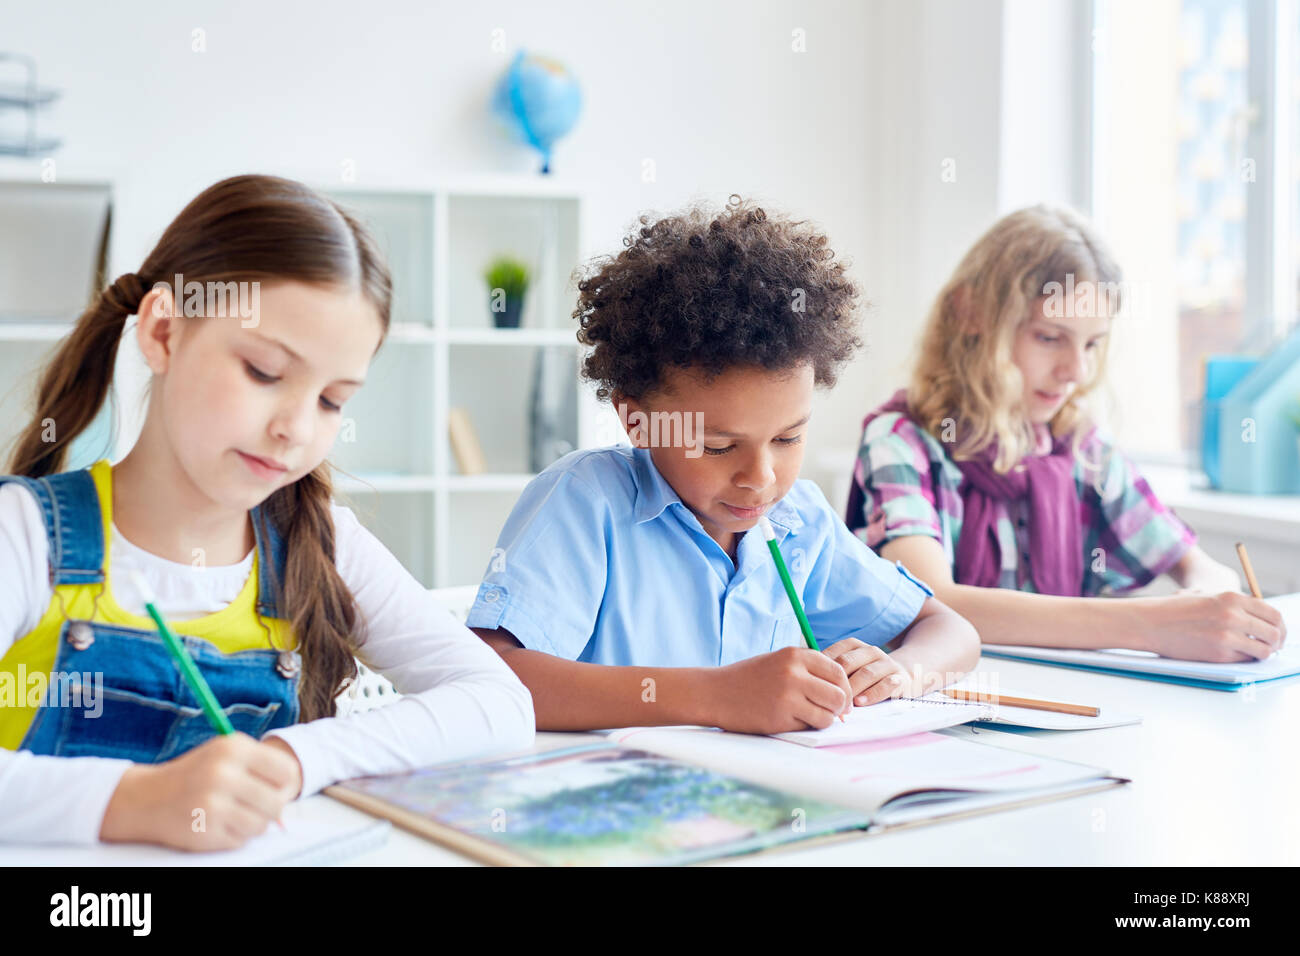 Group of schoolmates with pencils drawing at free topic lesson - Stock Image